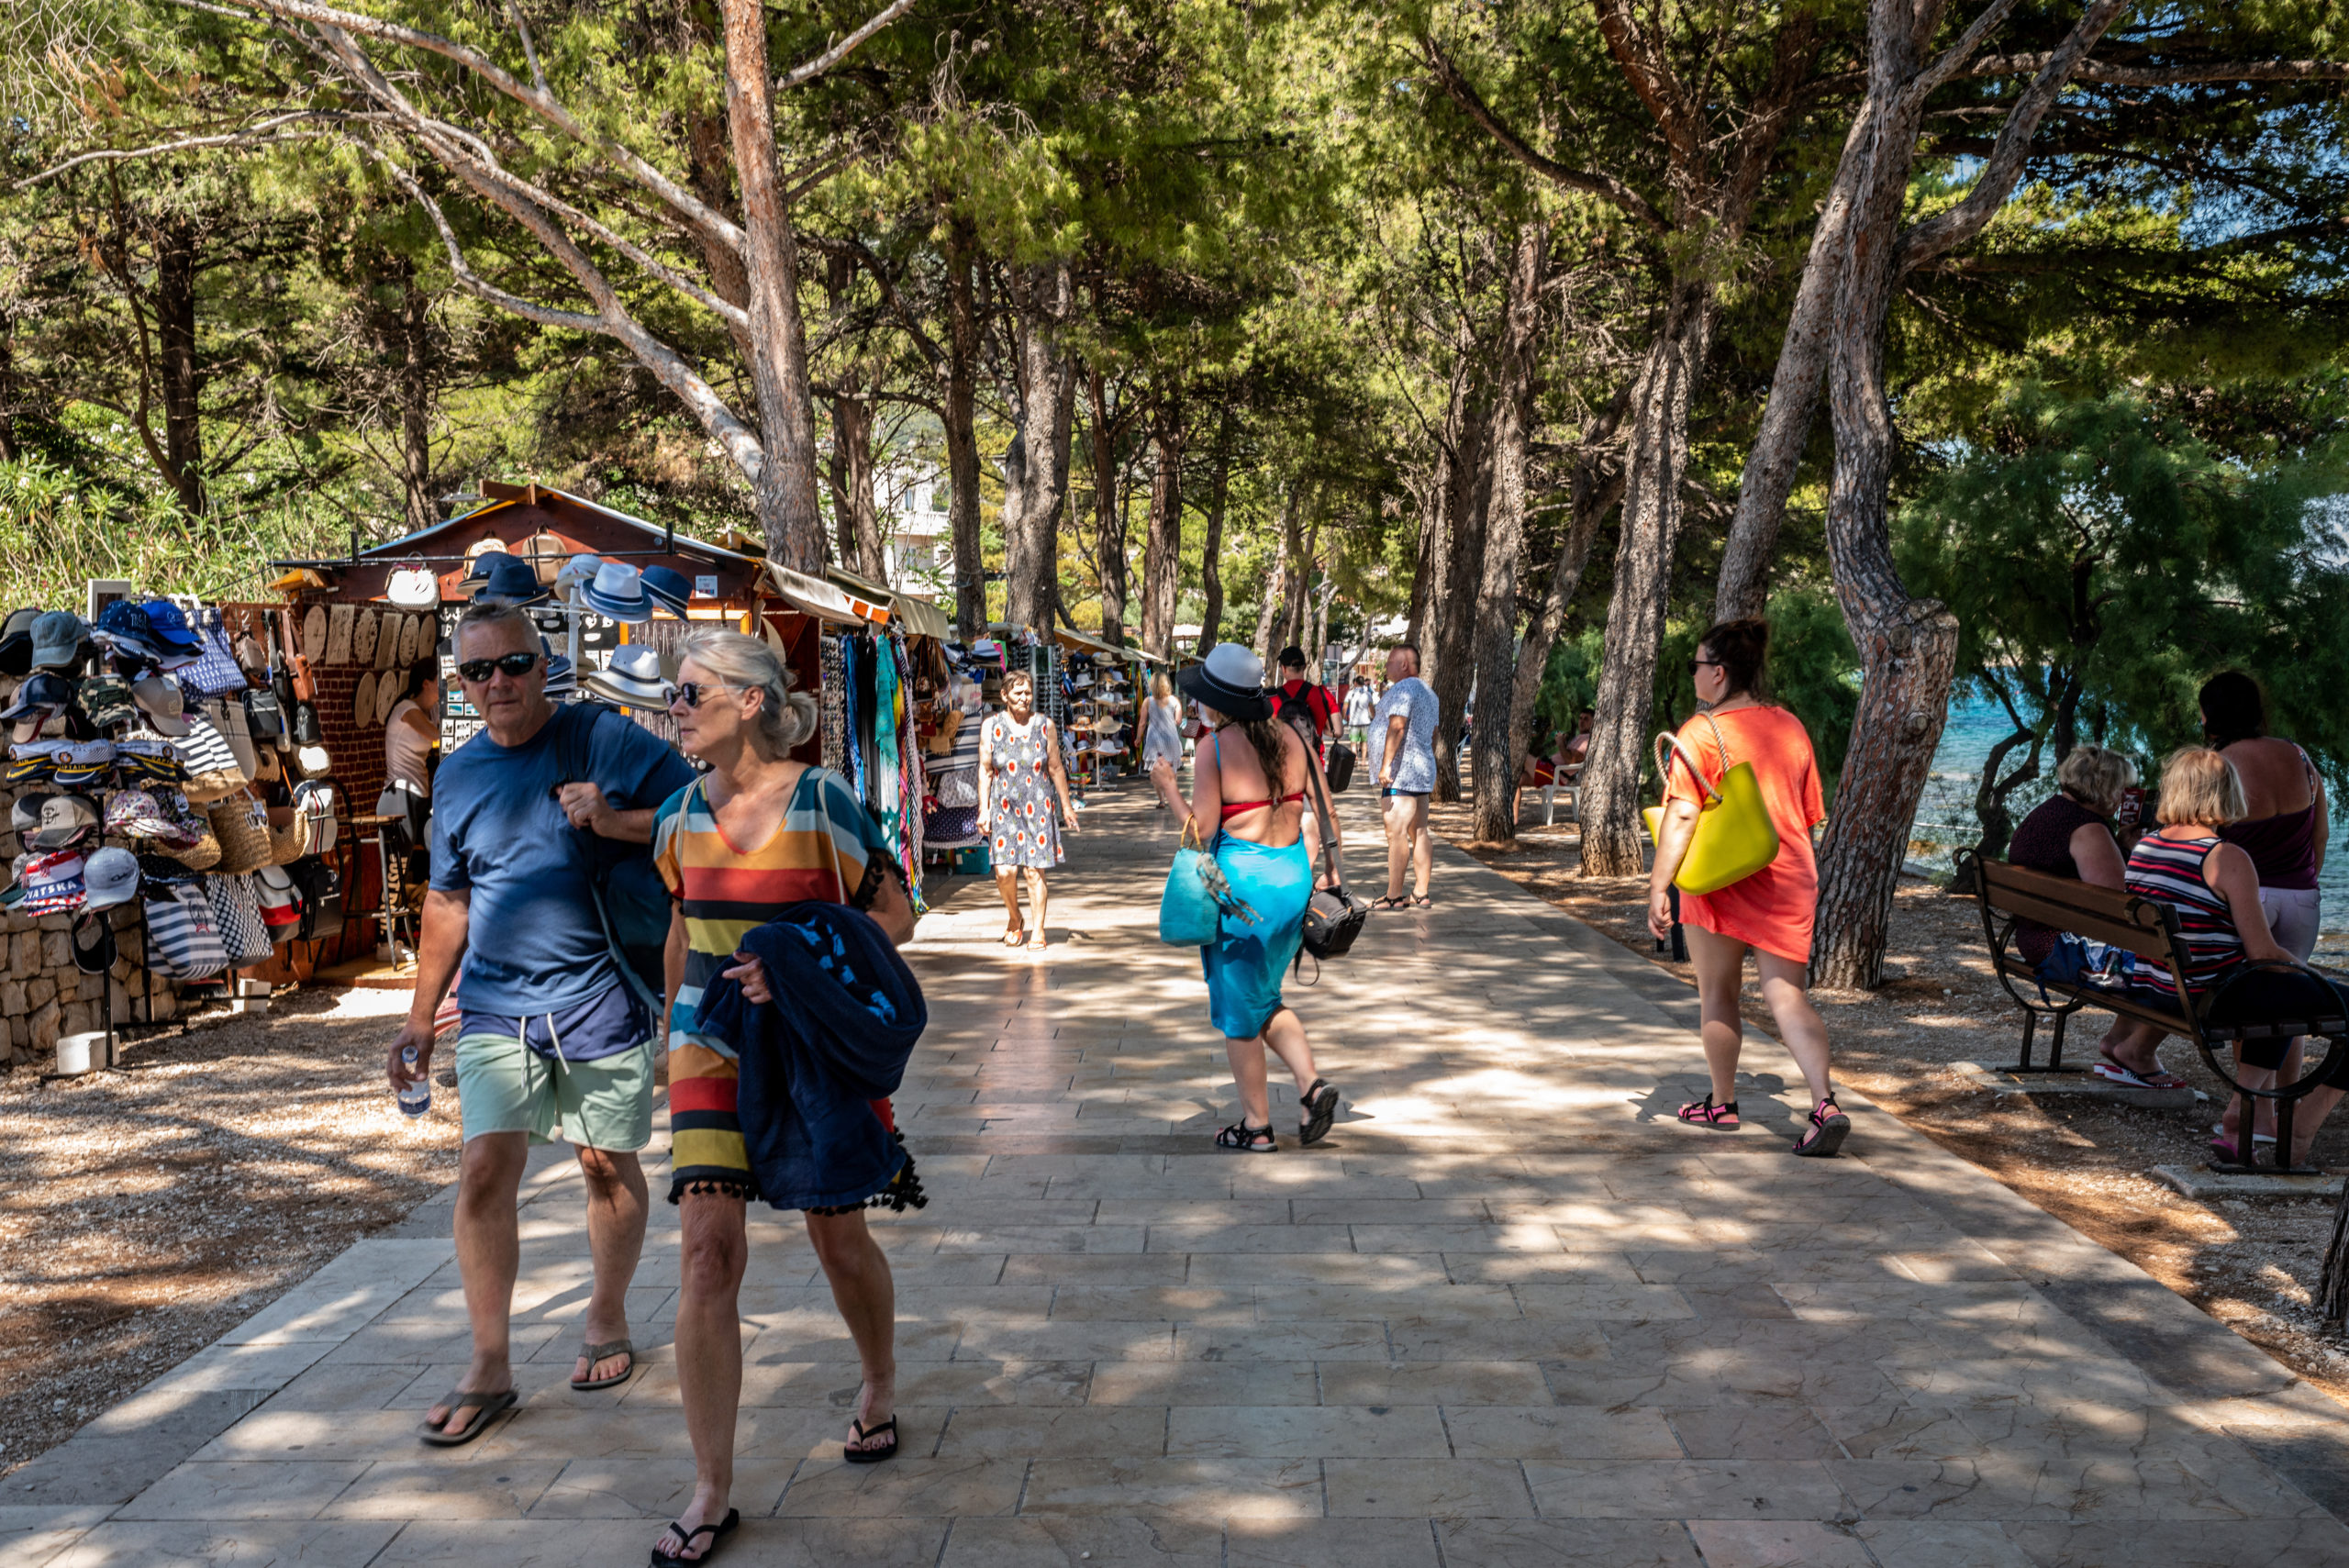 Tourists walk the road under a pinewood to reach the beaches on June 27, 2021 in Bol, Croatia. (Photo by Elisabetta Zavoli/Getty Images)